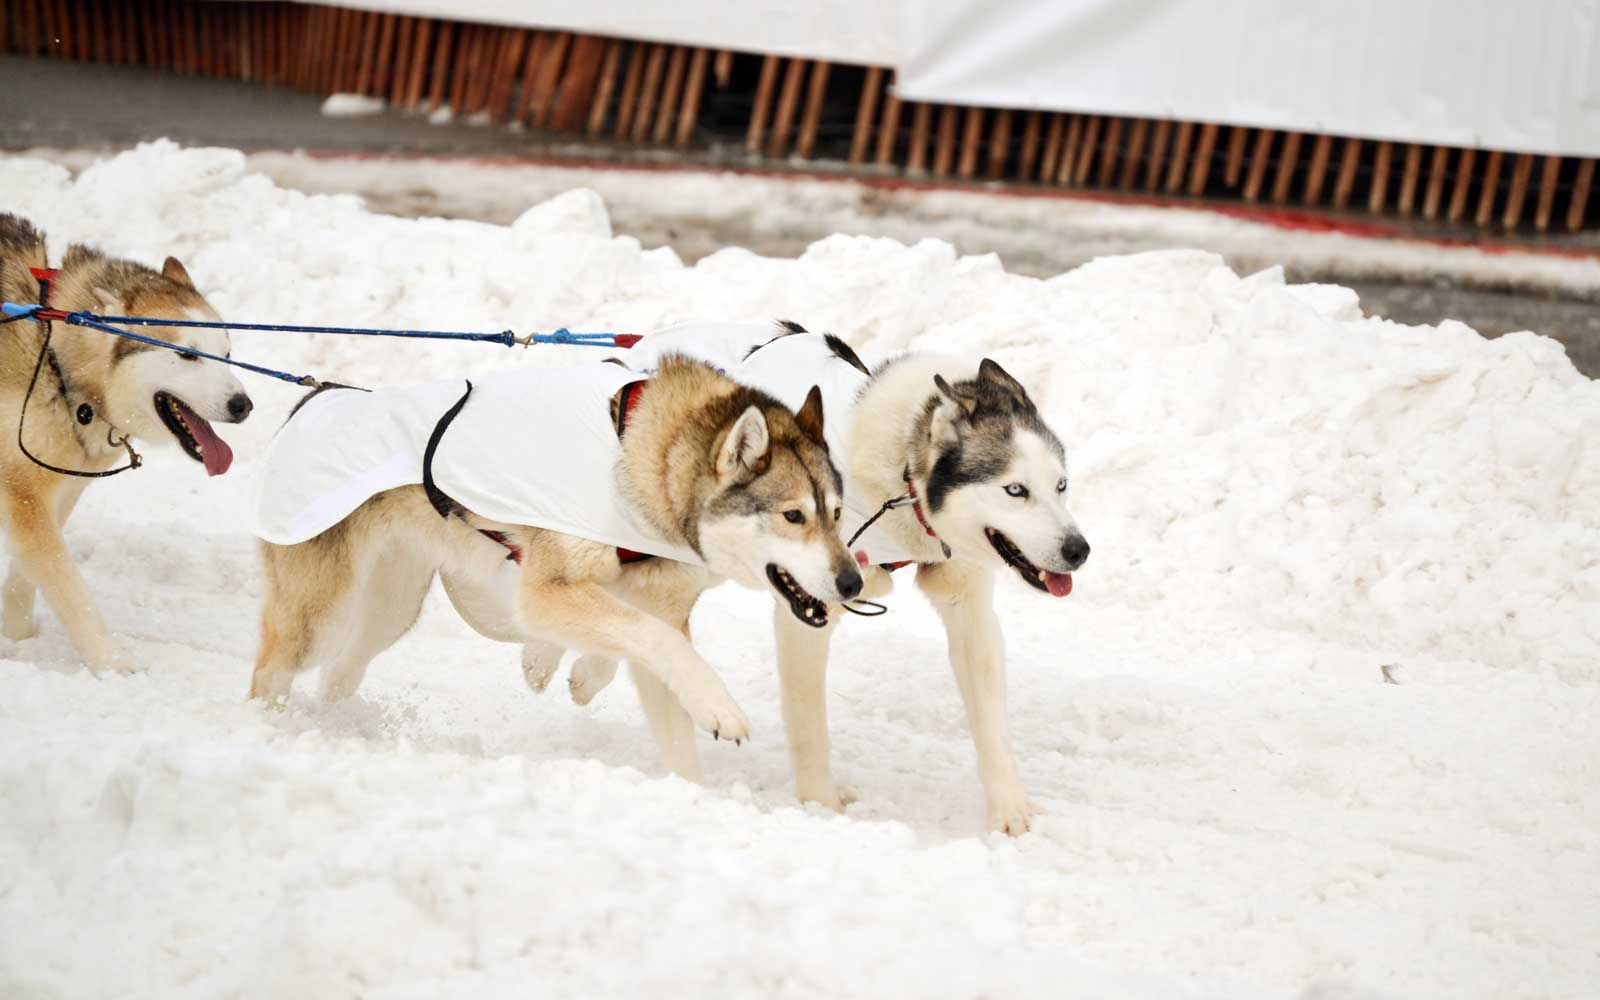 The ceremonial start of the Iditarod in downtown Anchorage, Alaska